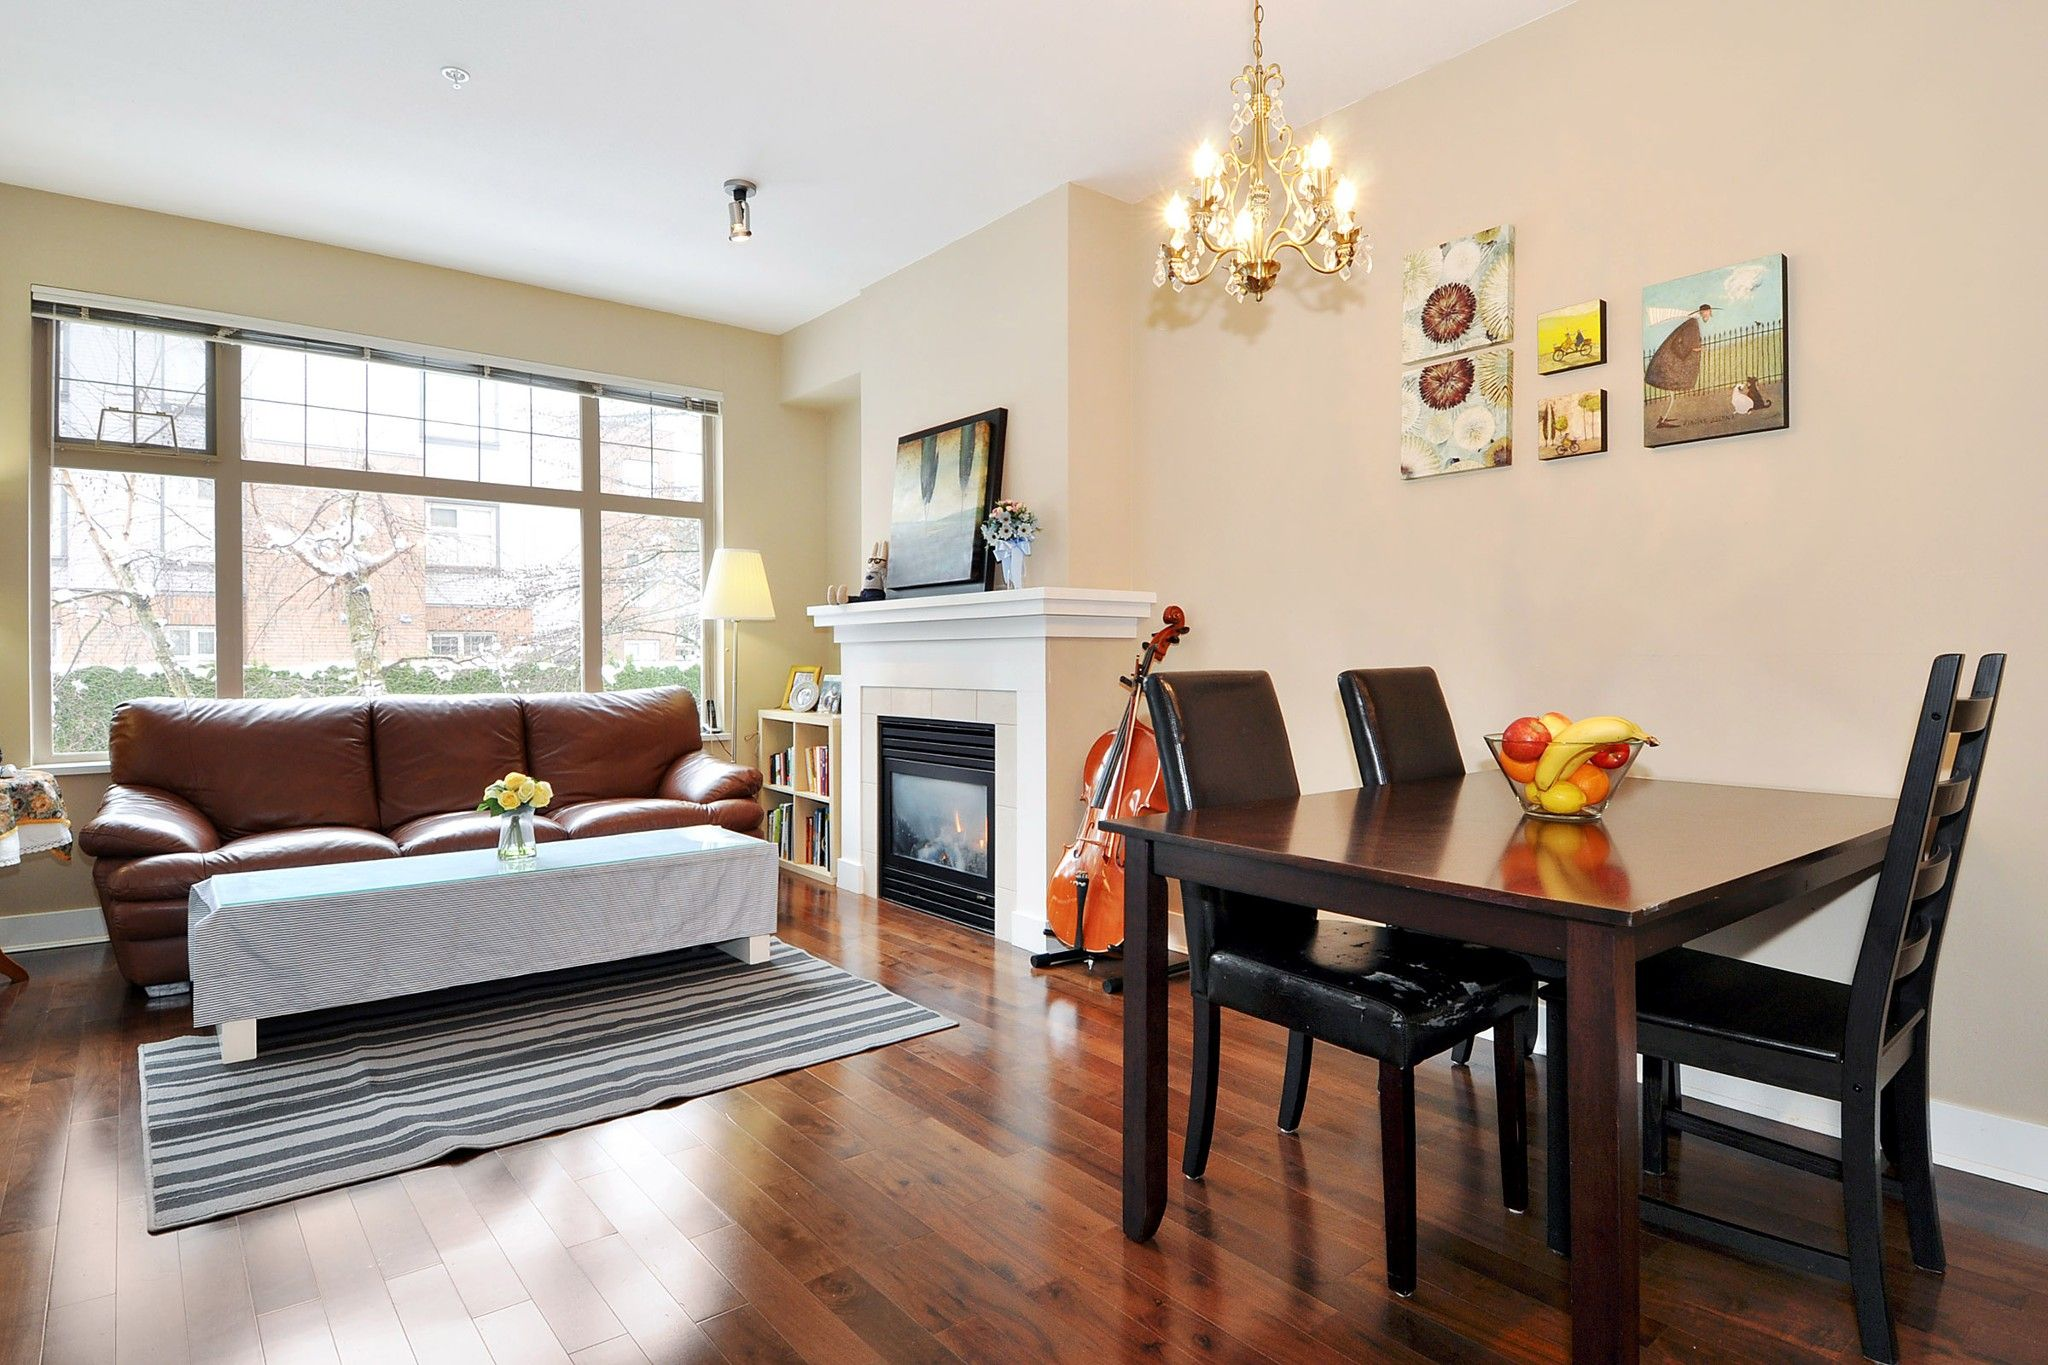 """Photo 5: Photos: 222 2083 W 33RD Avenue in Vancouver: Quilchena Condo for sale in """"DEVONSHIRE HOUSE"""" (Vancouver West)  : MLS®# R2341234"""